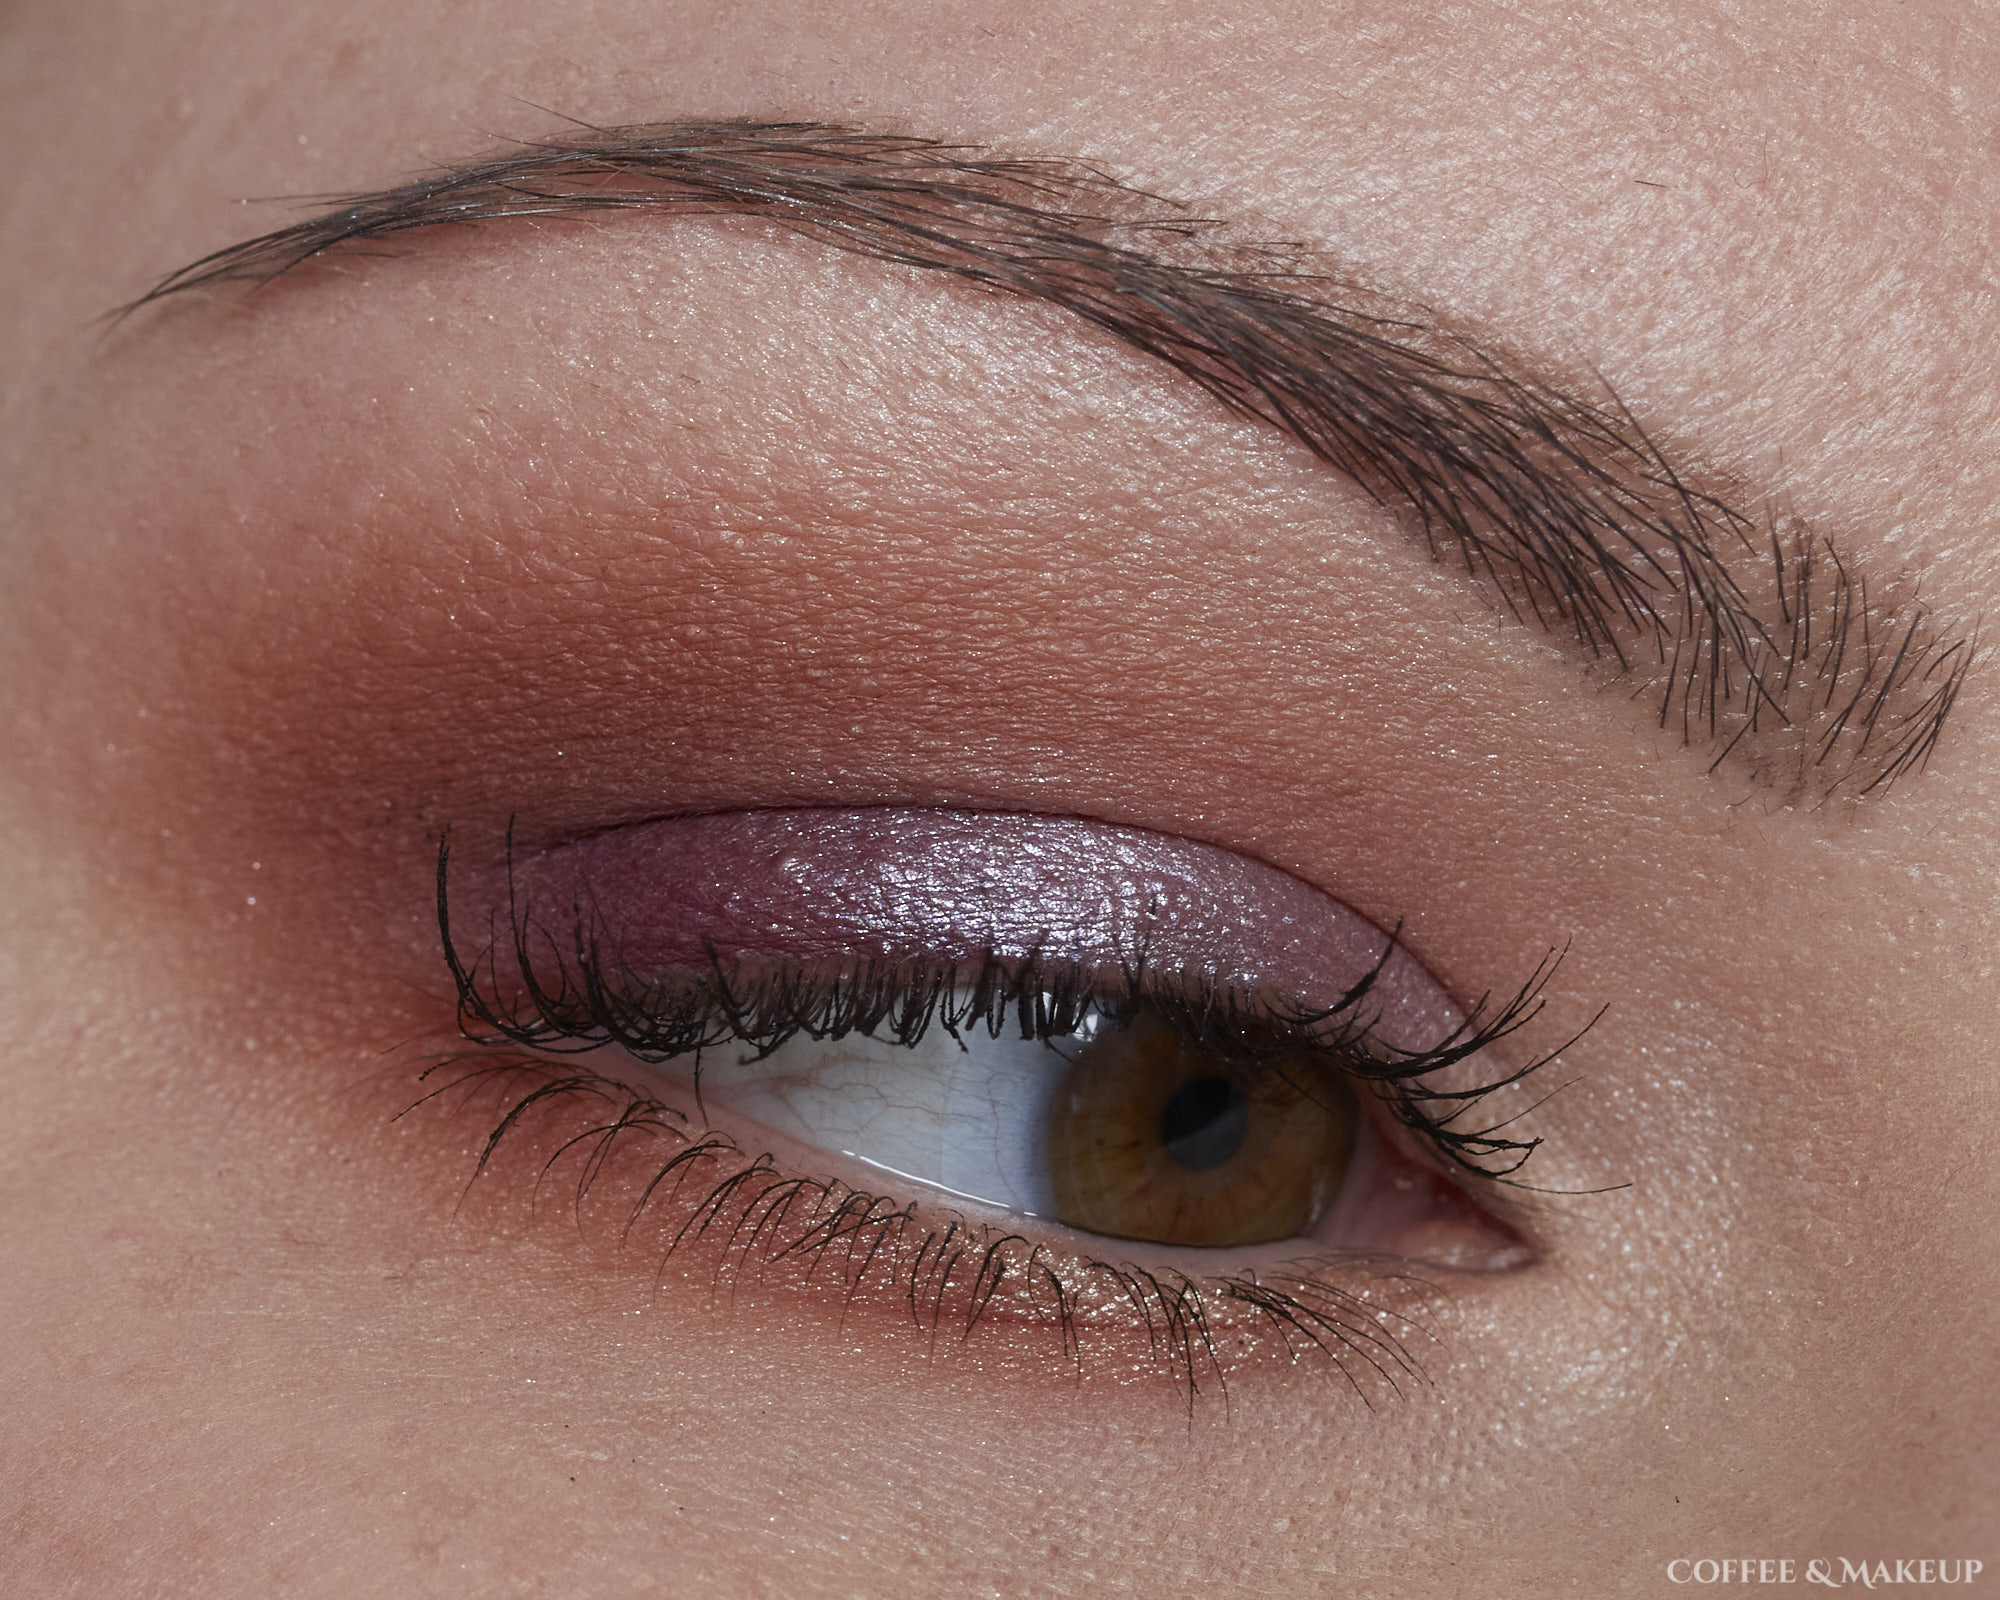 Makeup Geek Eyeshadow Look #8